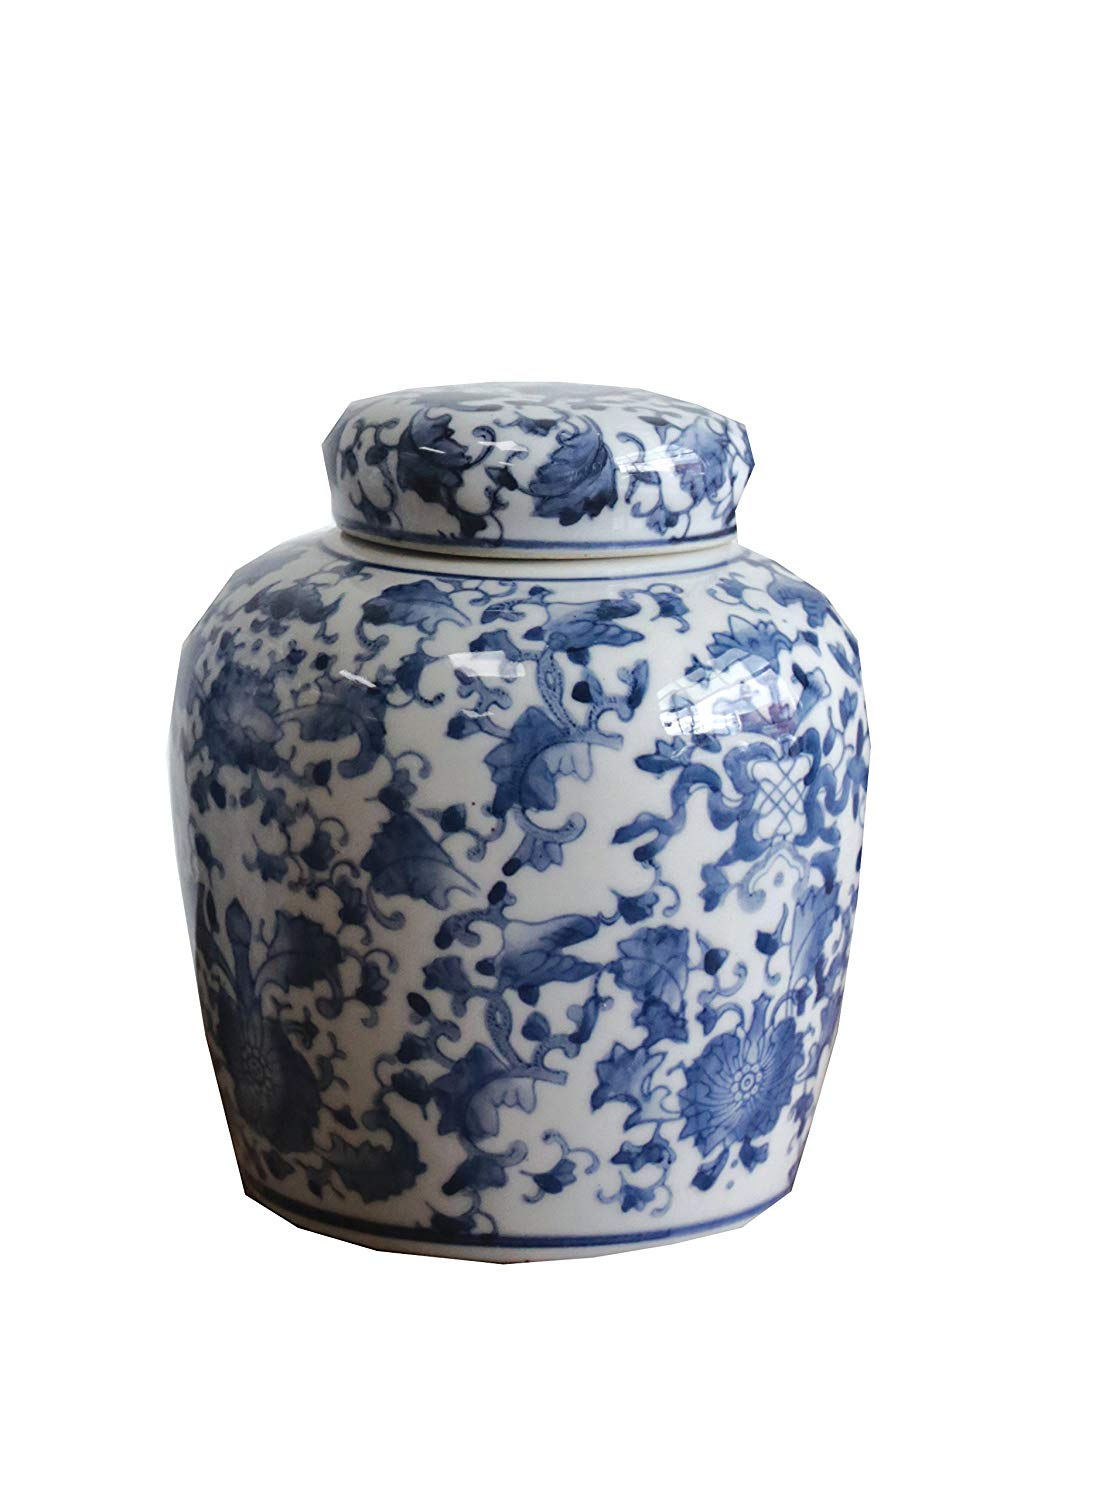 Bookshelf Styling Finds: Blue and white ginger jar